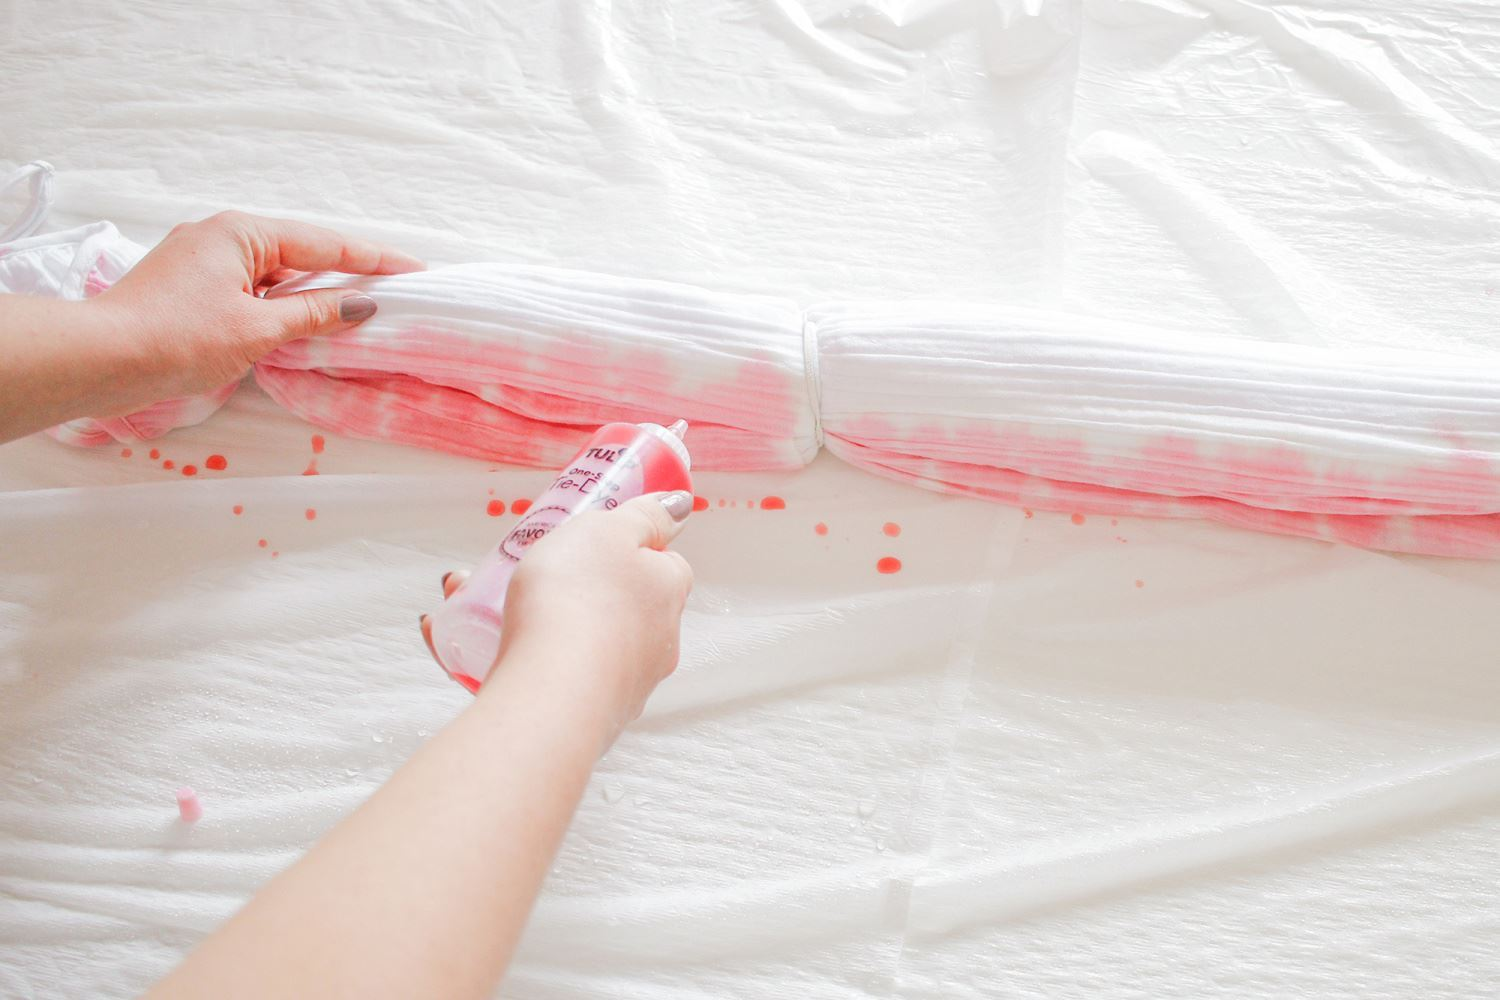 Apply first color of dye along length of folds